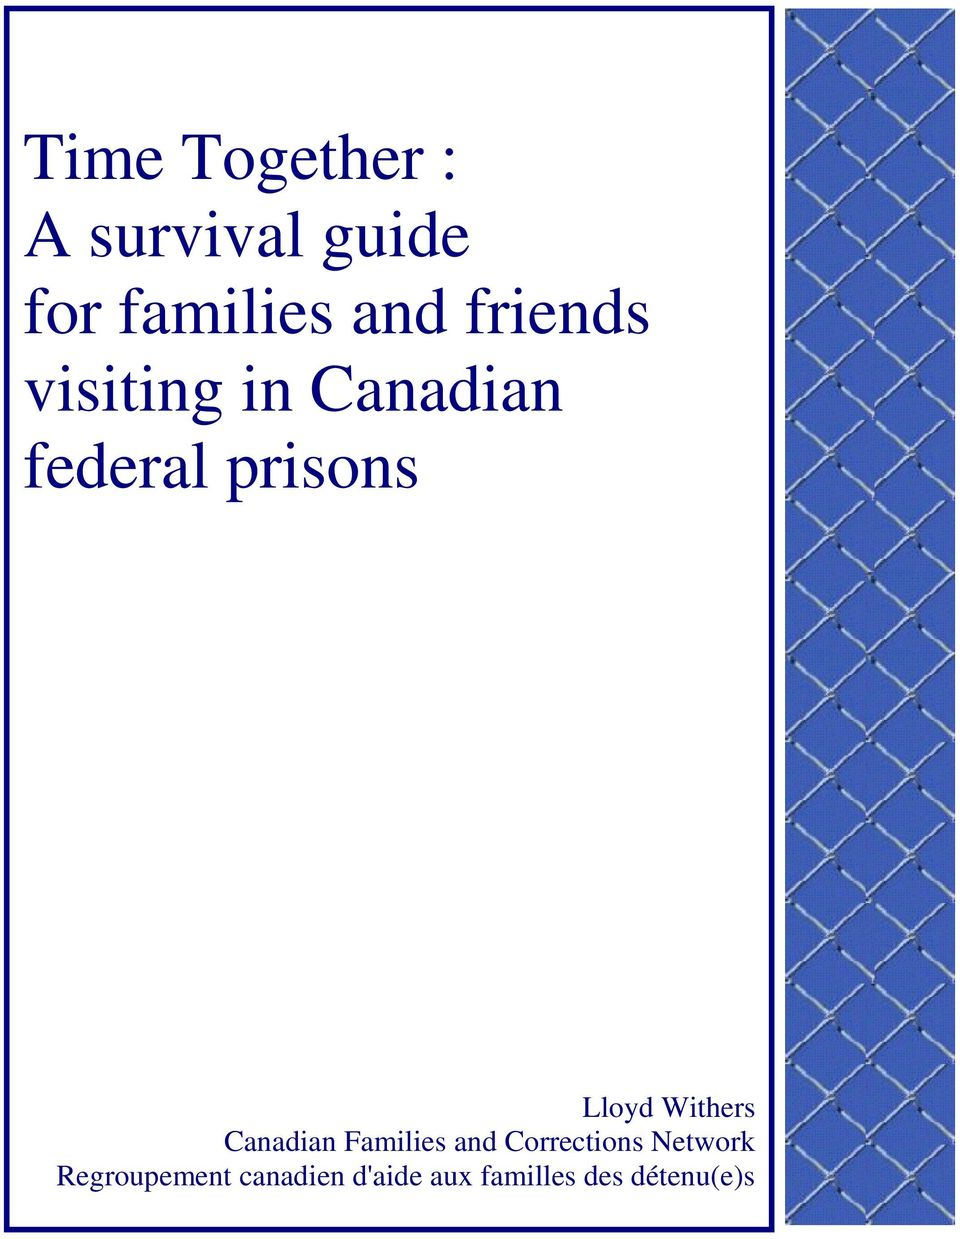 Withers Canadian Families and Corrections Network